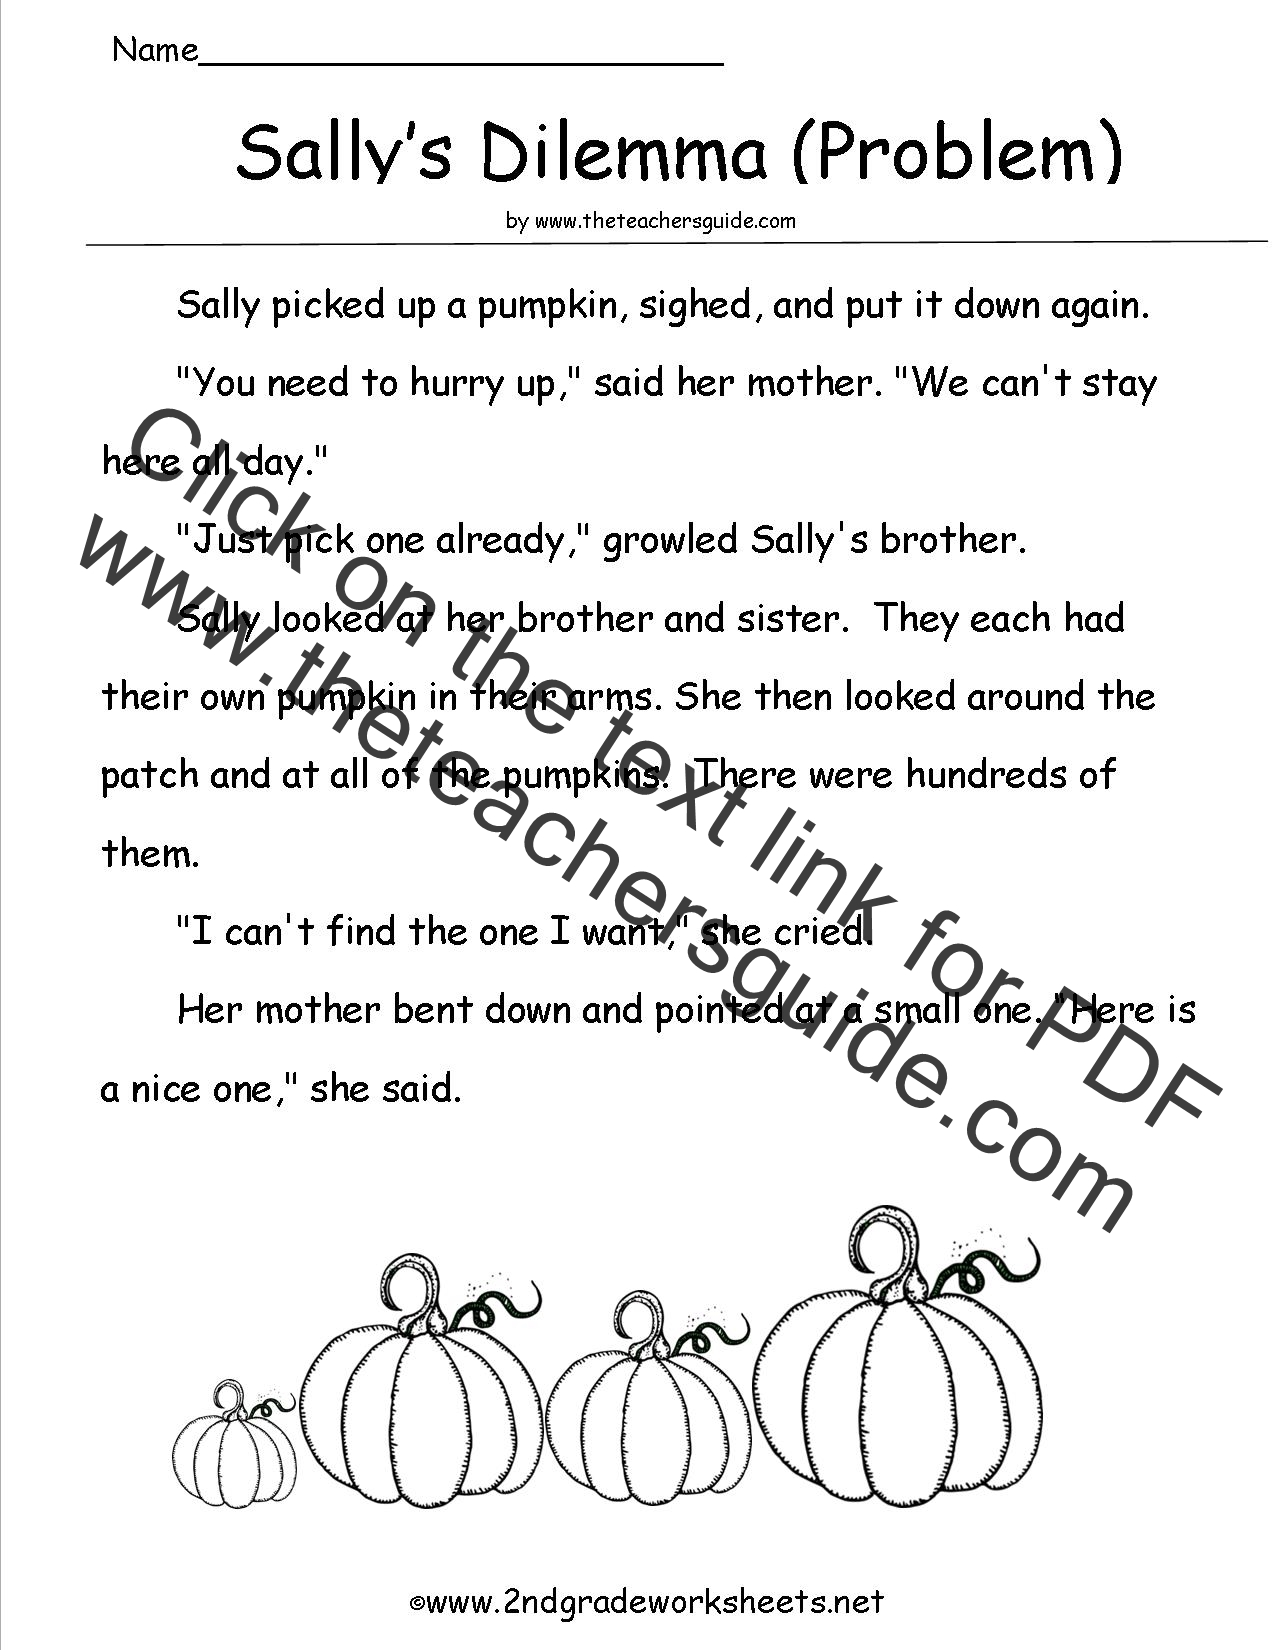 Worksheets Halloween Worksheet halloween worksheets and printouts pumpkin comprehension paper